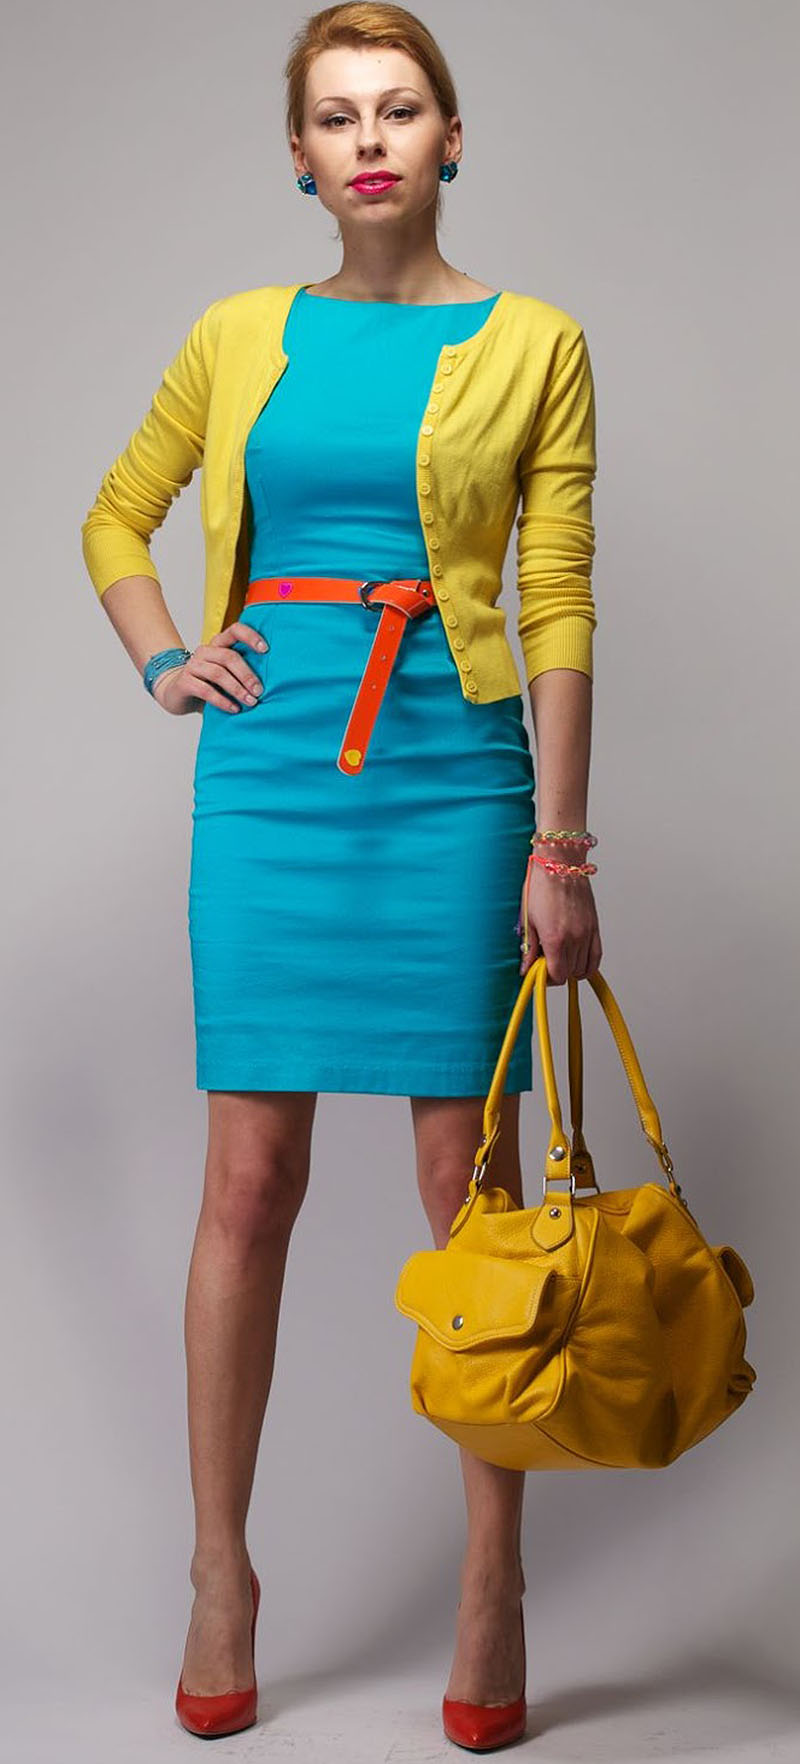 blue-med-dress-shift-belt-bun-studs-yellow-bag-orange-shoe-pumps-yellow-cardigan-howtowear-fashion-style-outfit-spring-summer-hairr-lunch.jpg